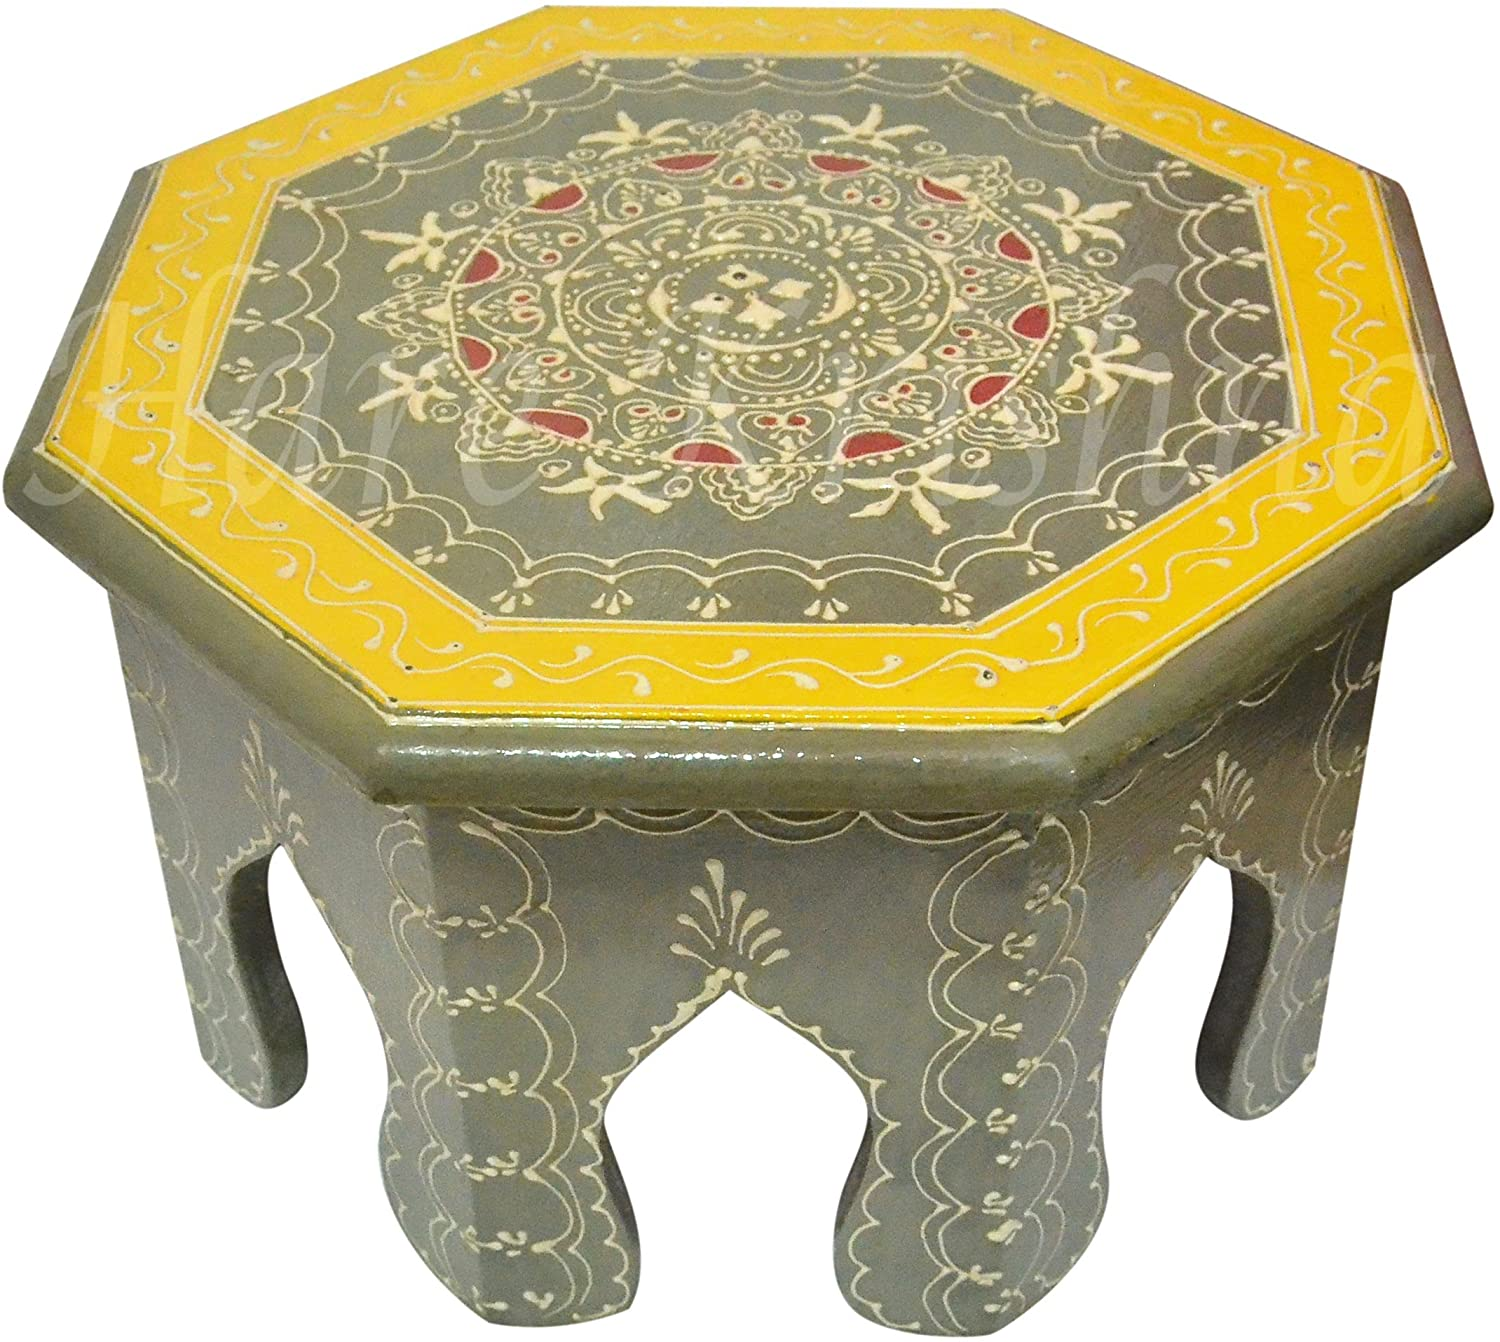 Festive Special Wooden Footstool for Home Decor Low Side Table (Gray) 10 x 10 x 6 Inches